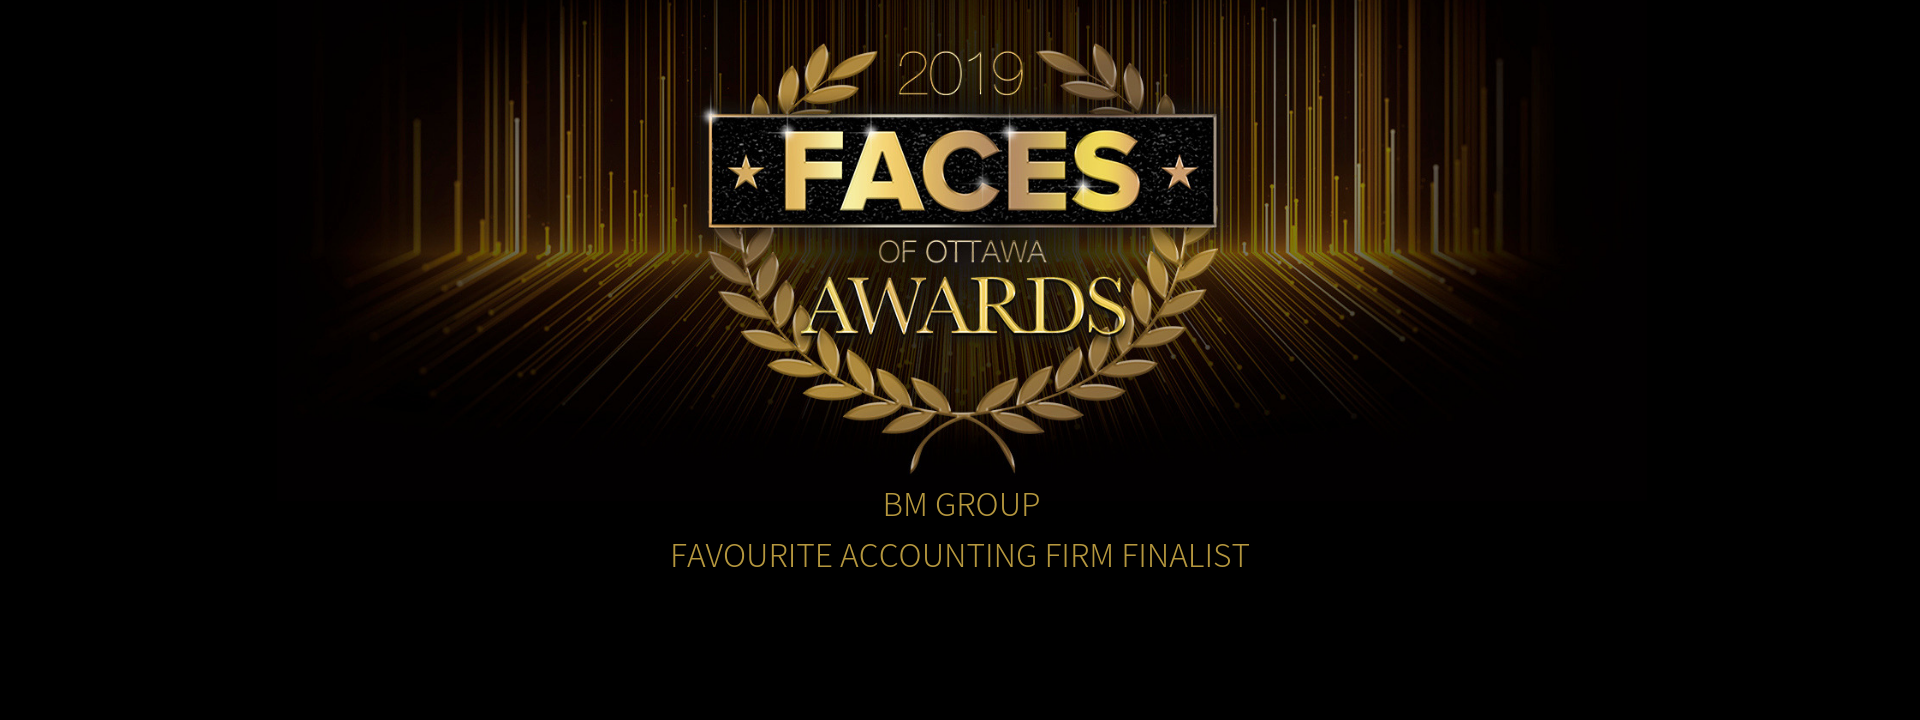 FAVOURITE ACCOUNTING FIRM FINALIST